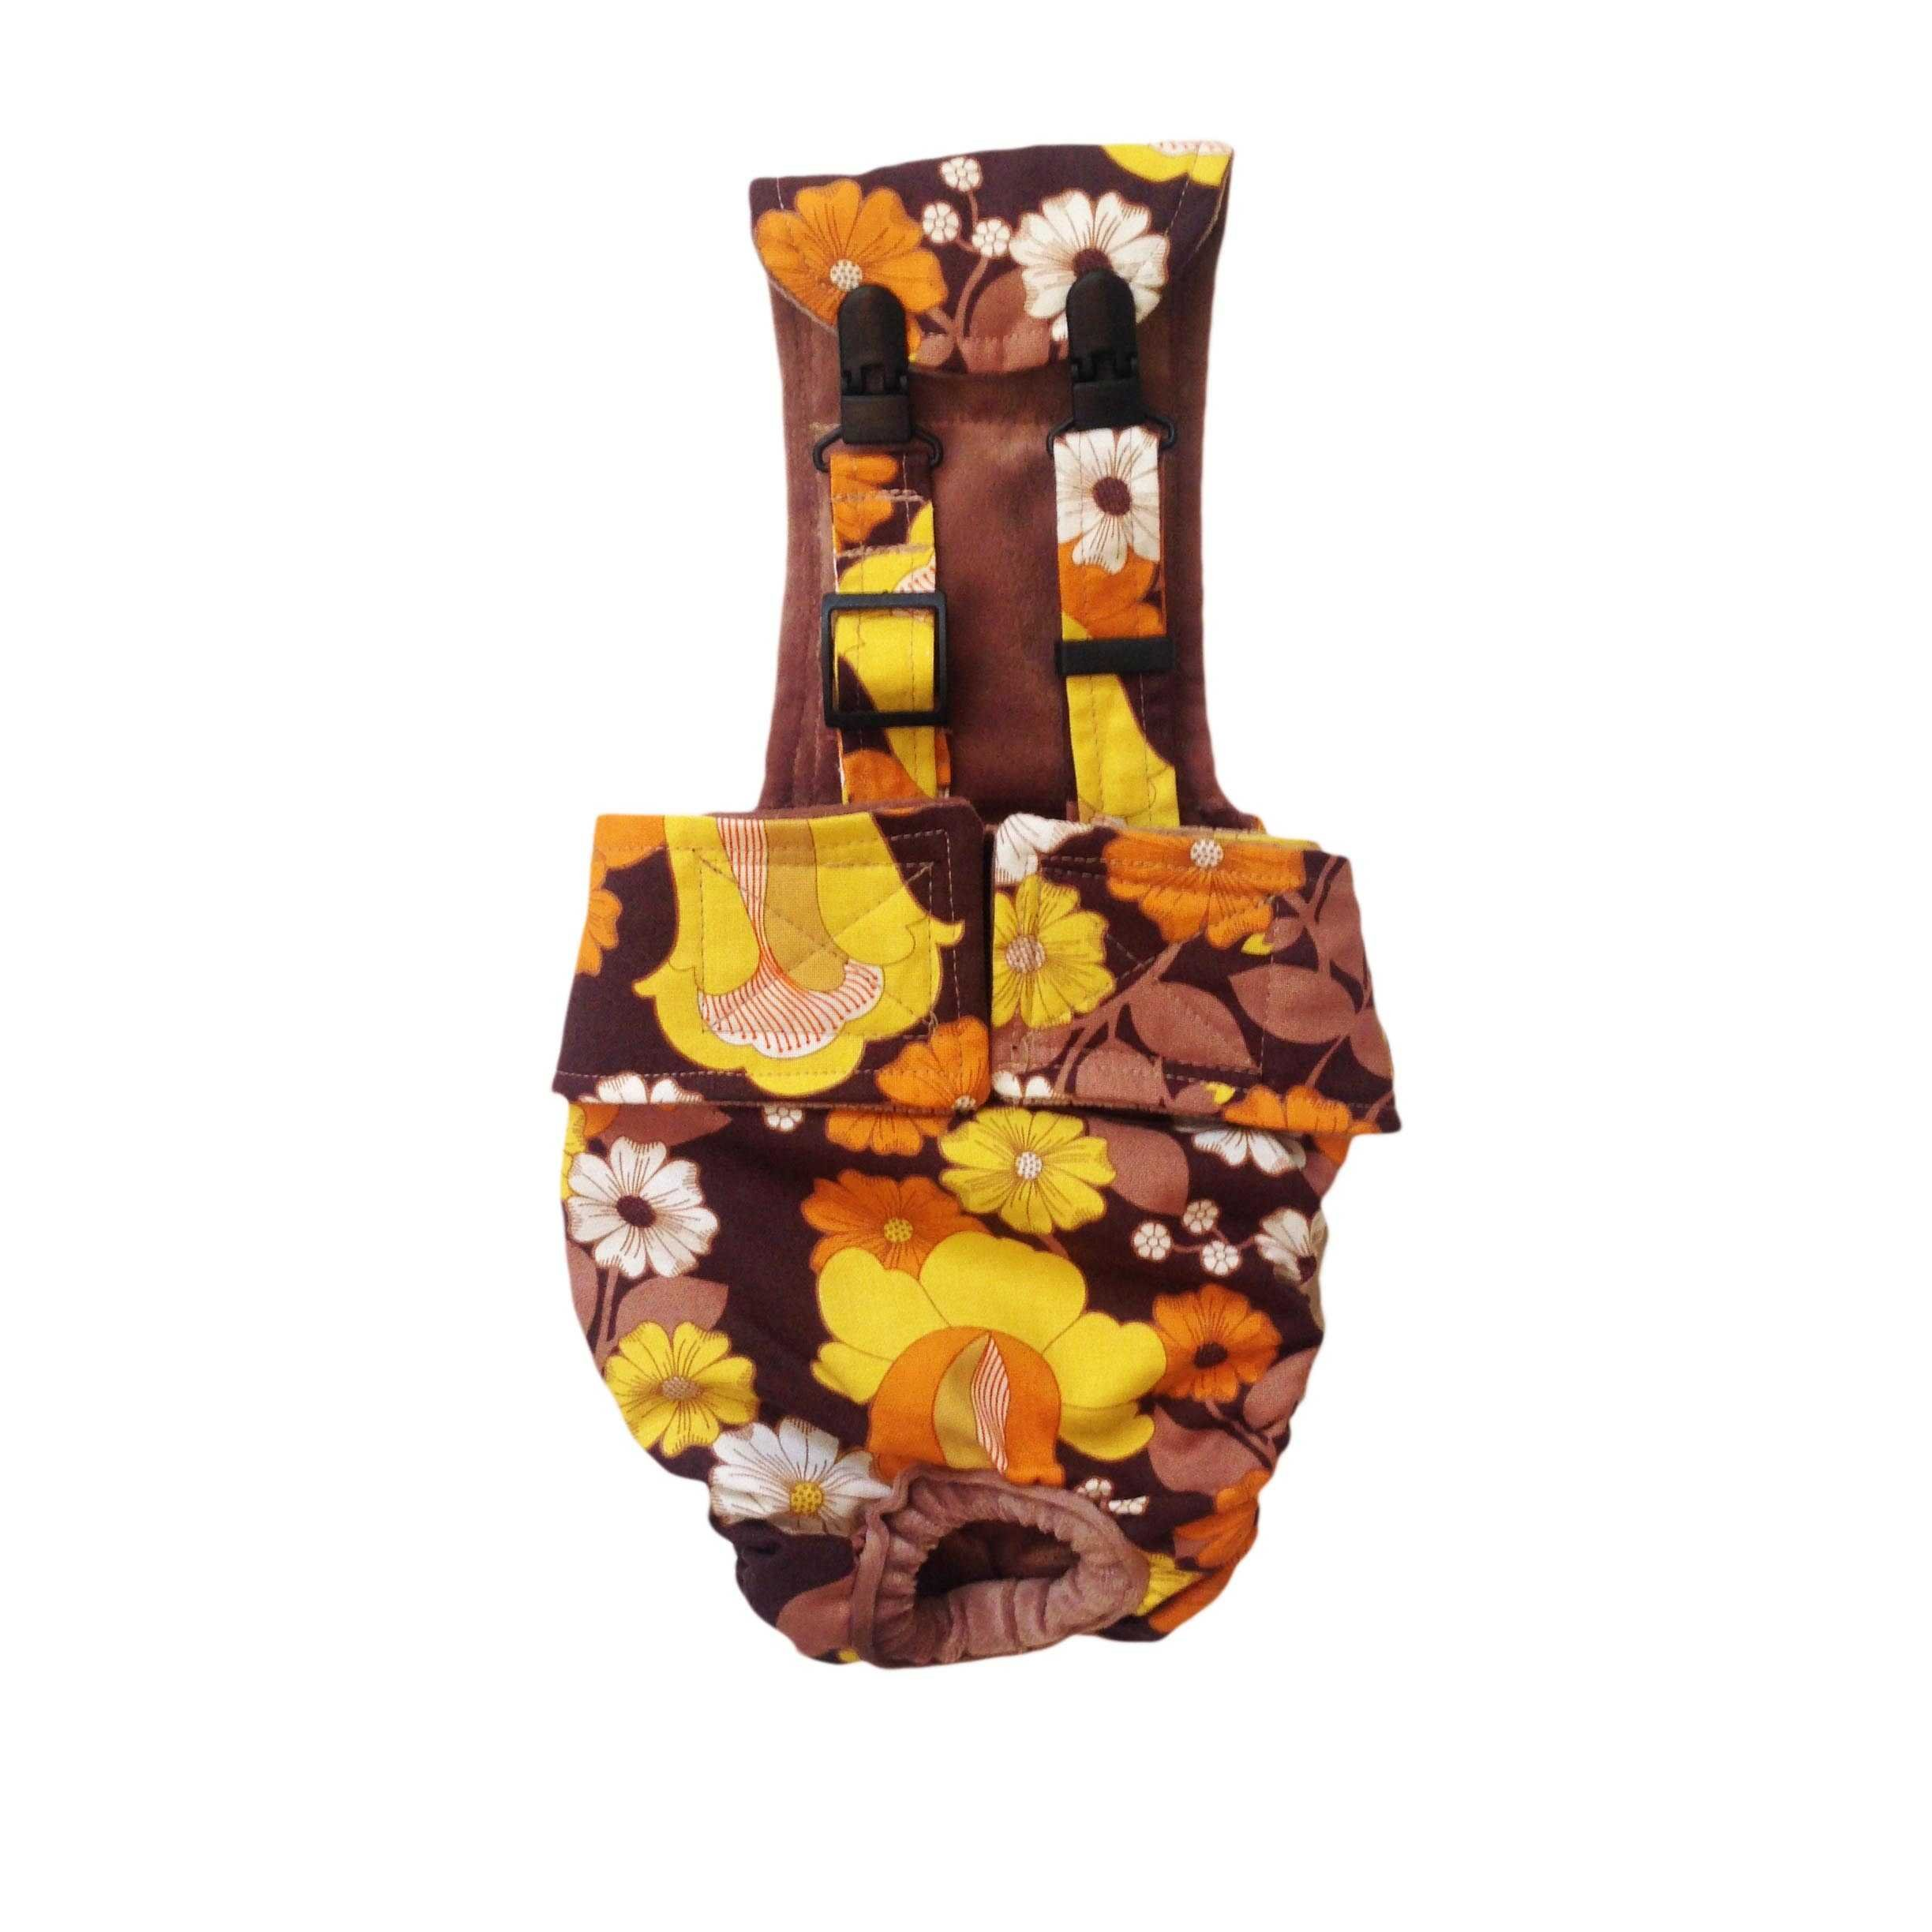 Dog Diaper Overall - Made in USA - Brown and Yellow Flowers Escape-Proof Washable Dog Diaper Overall, XXXL for Dog Incontinence, Marking, Housetraining and Females in Heat